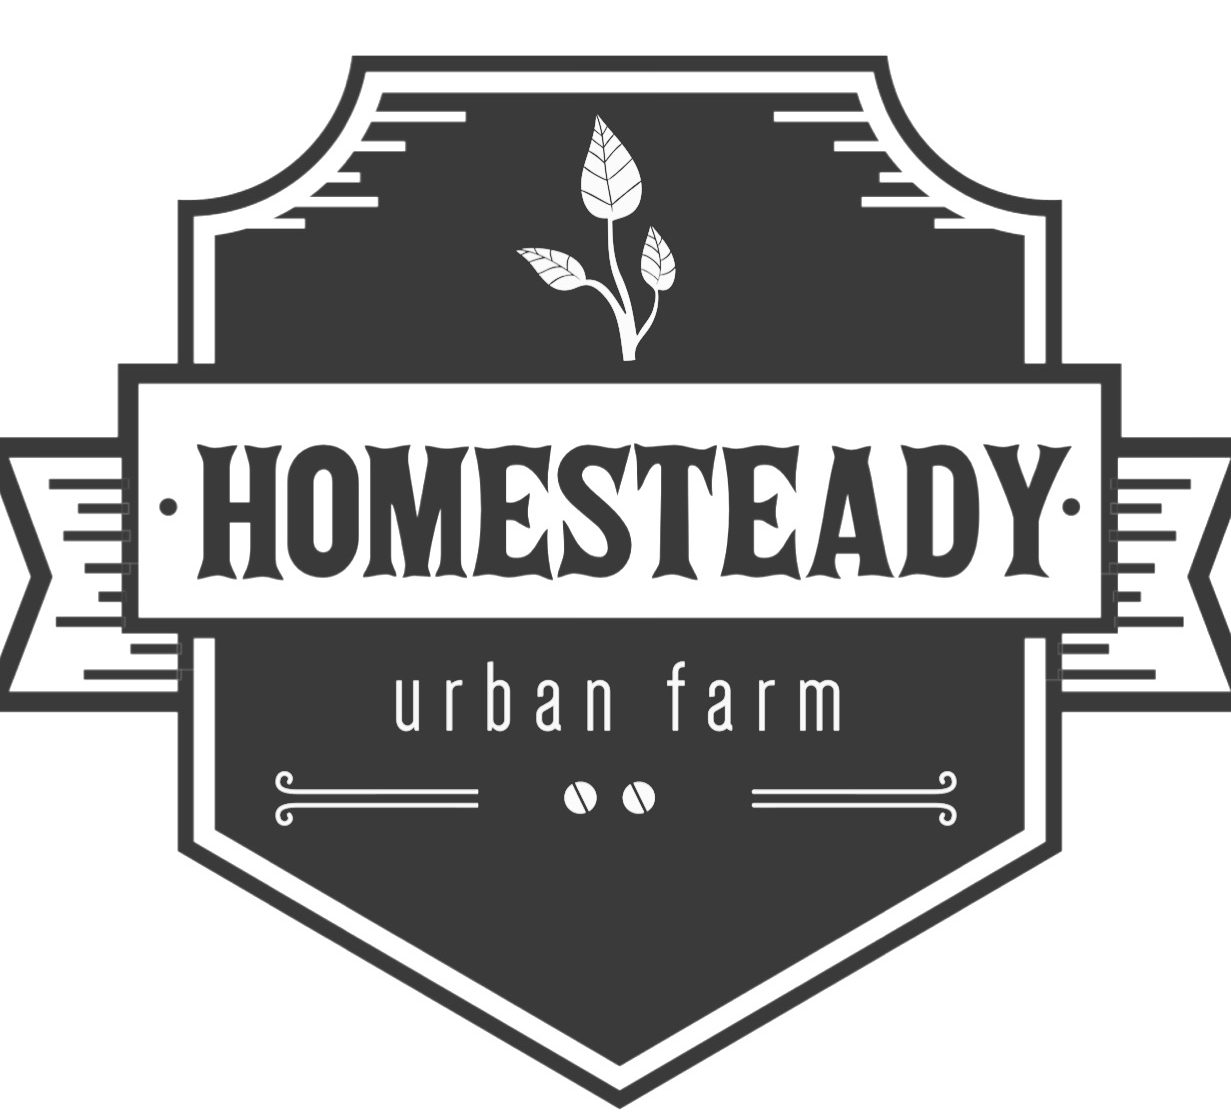 Homesteady Urban Farm